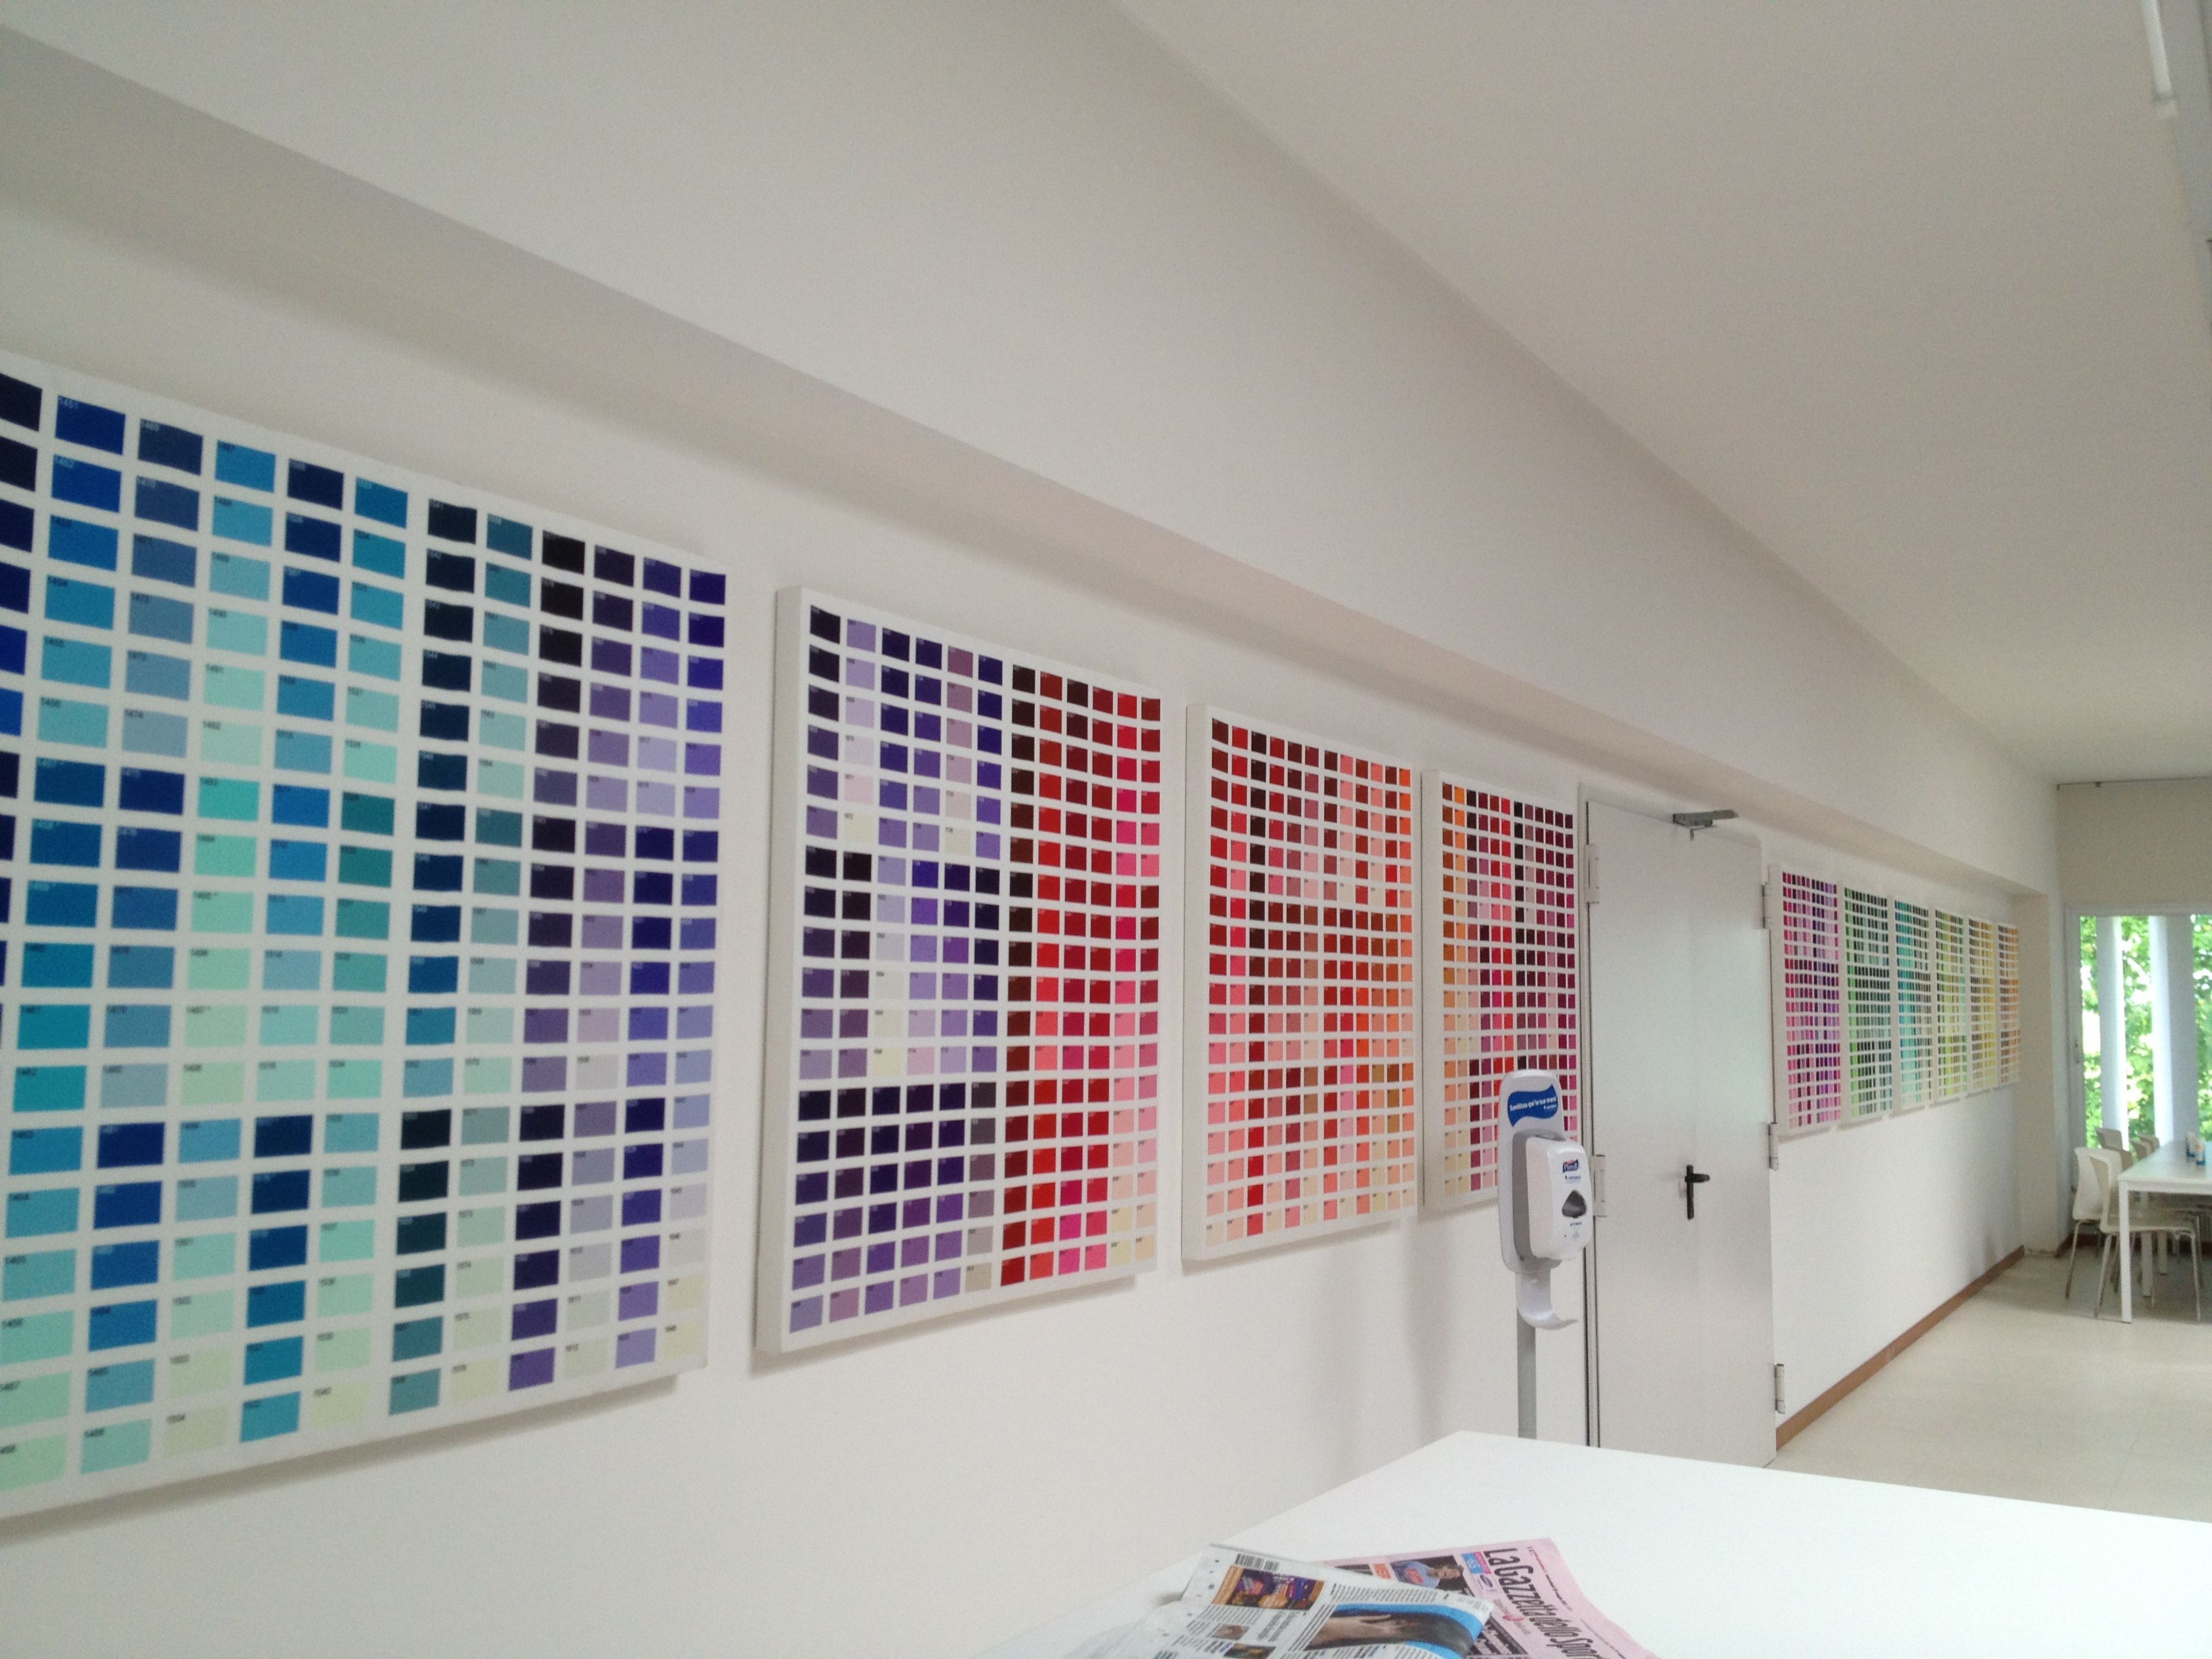 Rati Fabric Manufacturer, Italy Break Room, Pantone Swatches Made Into